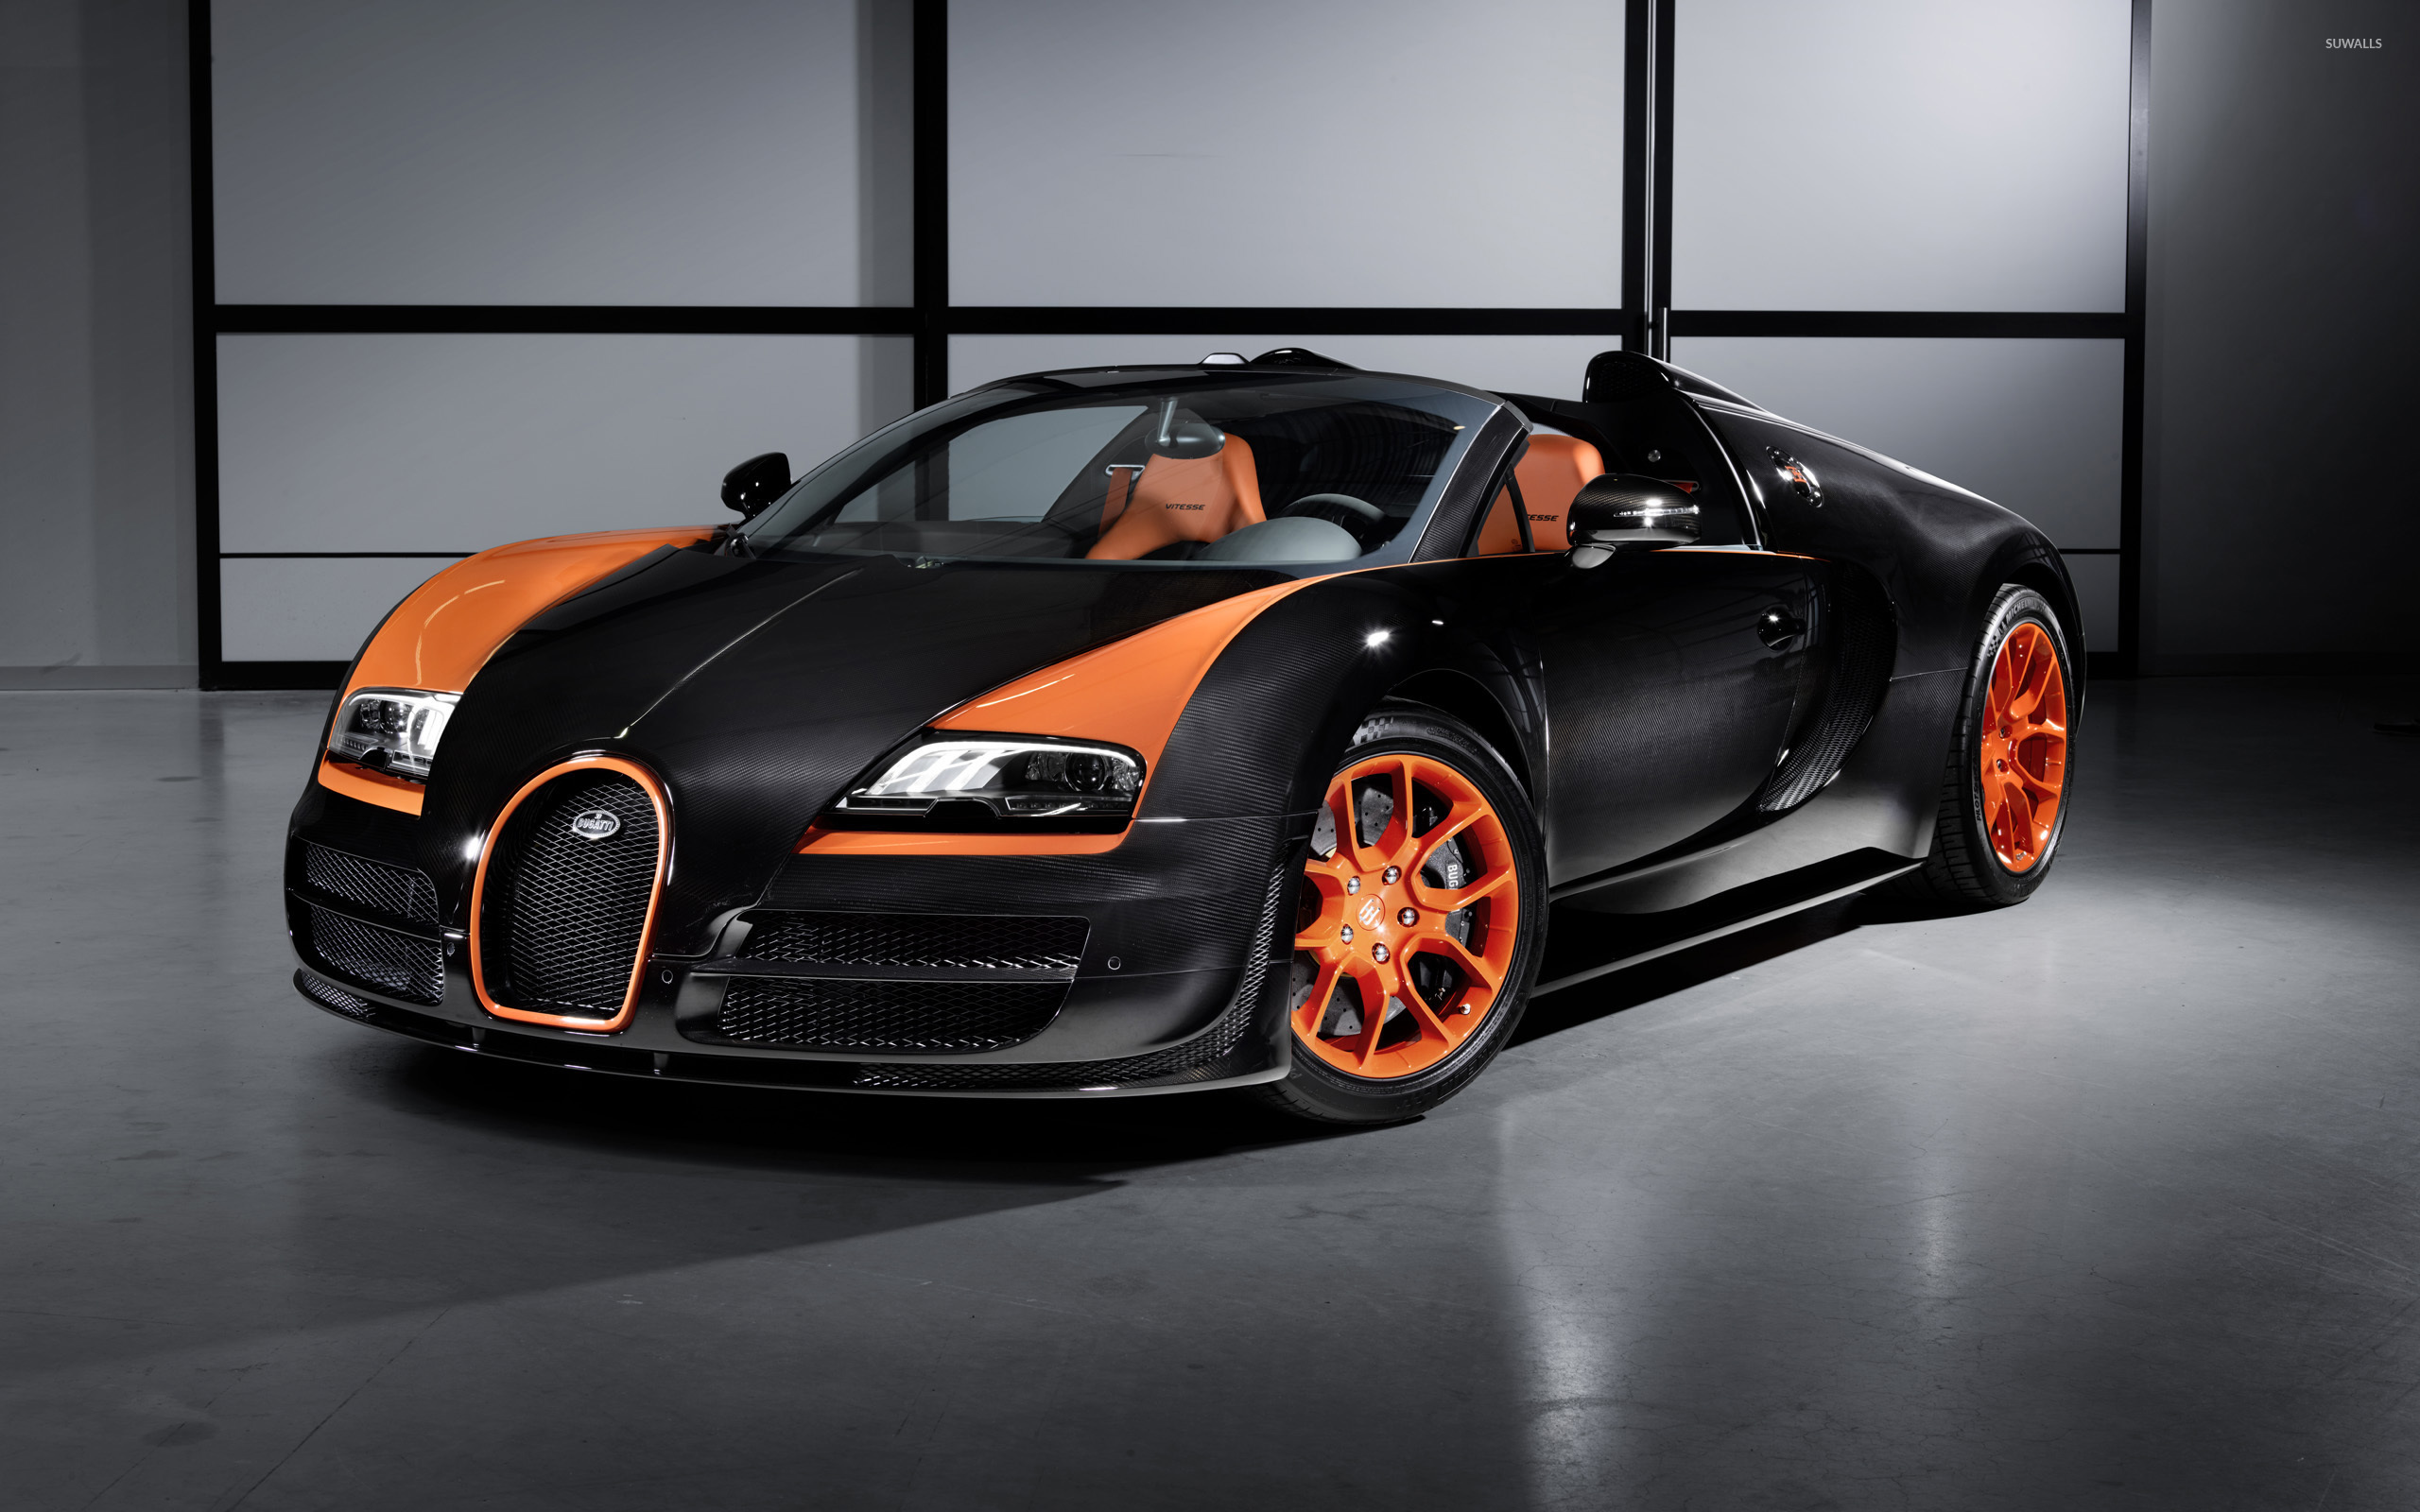 Bugatti Veyron Front Side View Wallpaper Car Wallpapers 53524